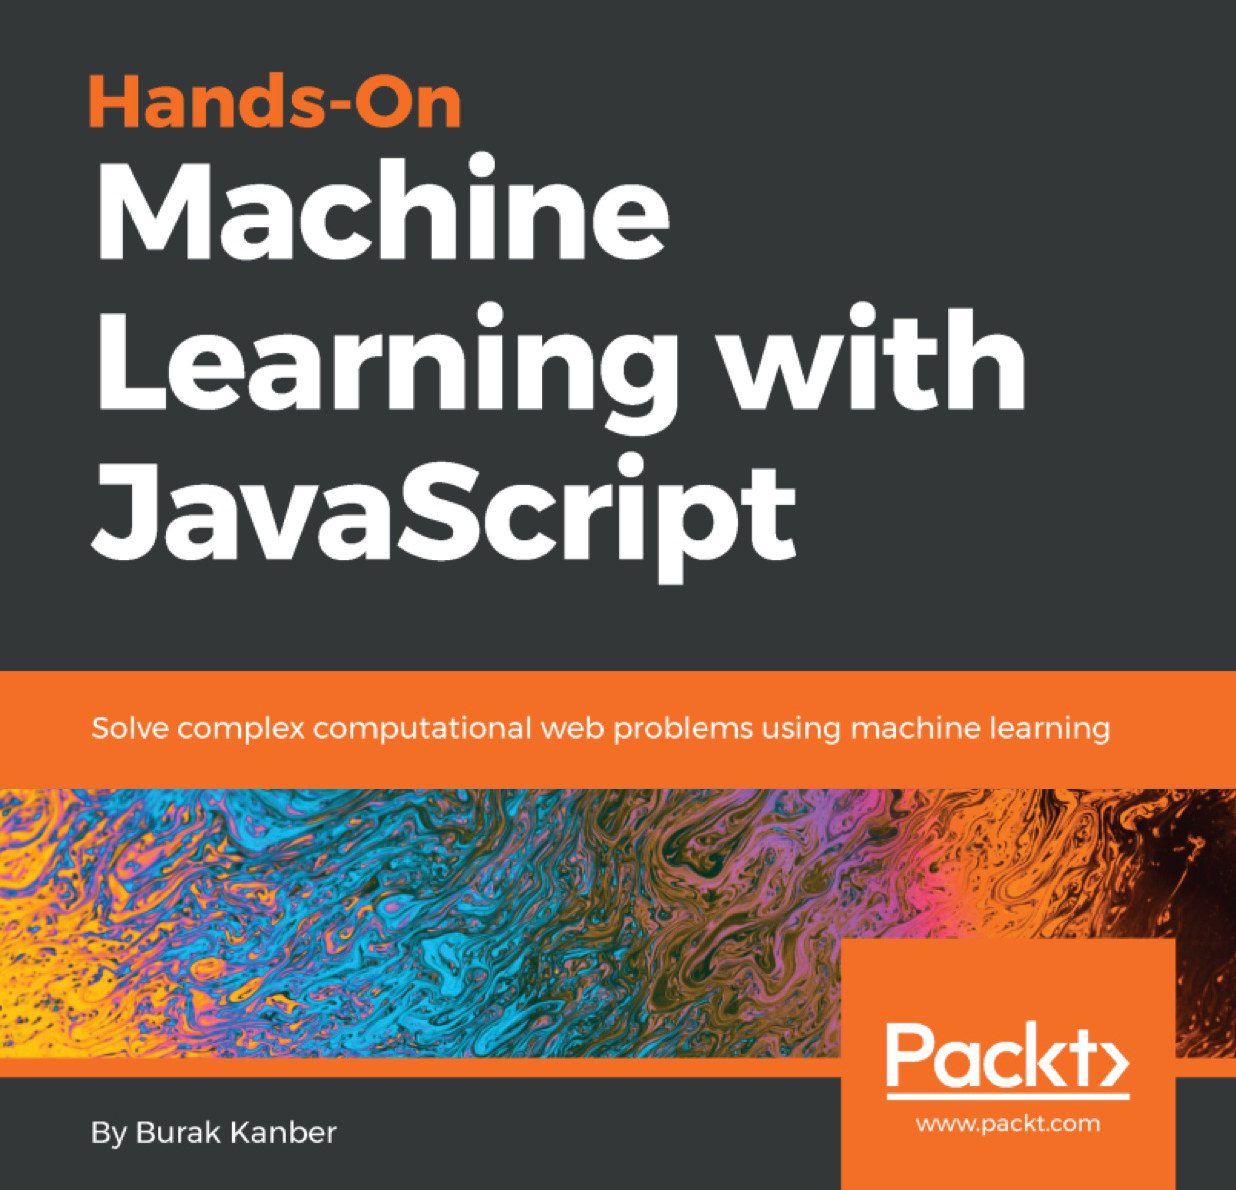 Hands-on Machine Learning in JavaScript